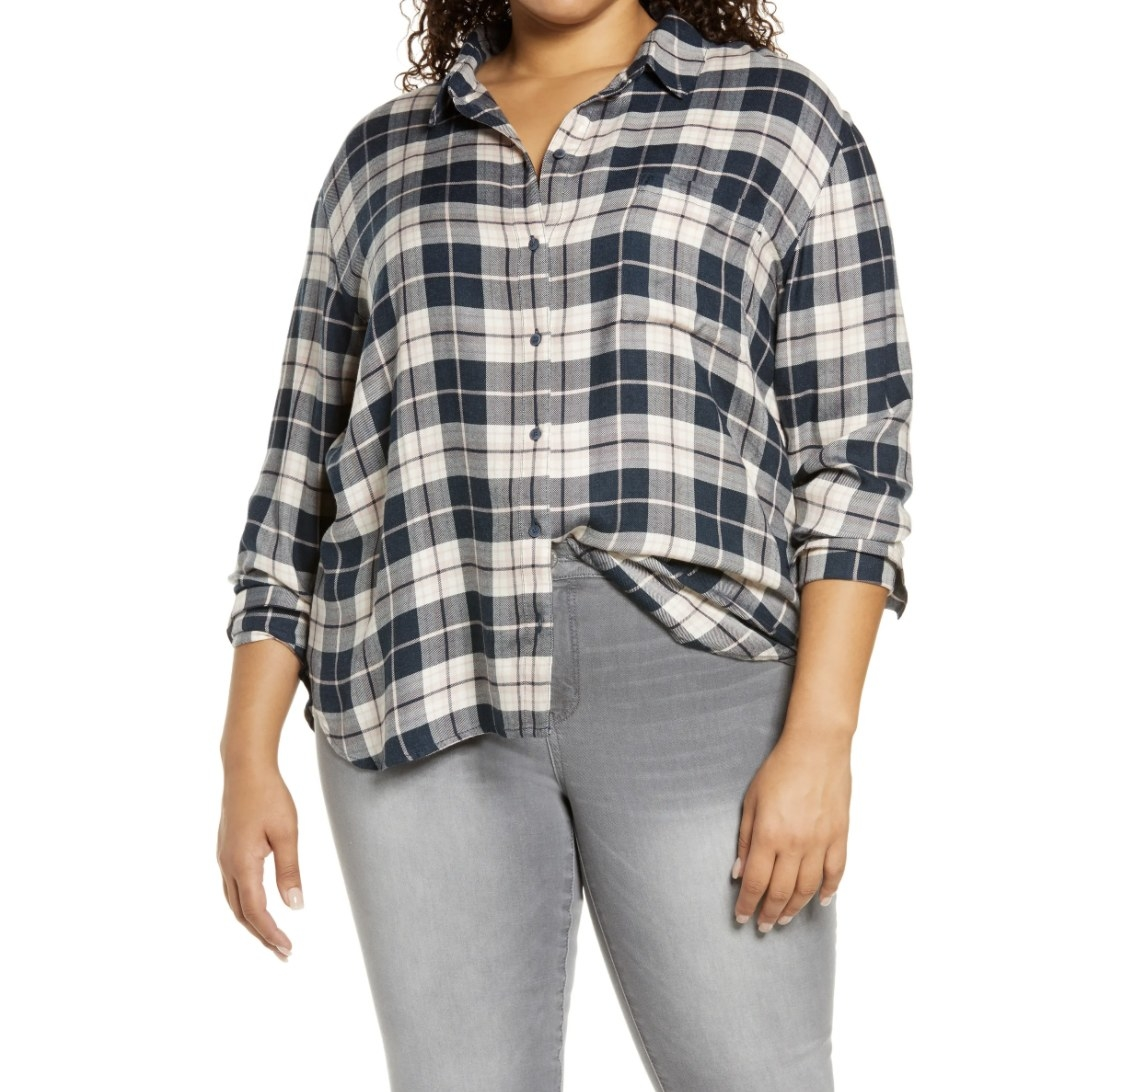 Model is wearing a black and white plaid top and grey denim jeans